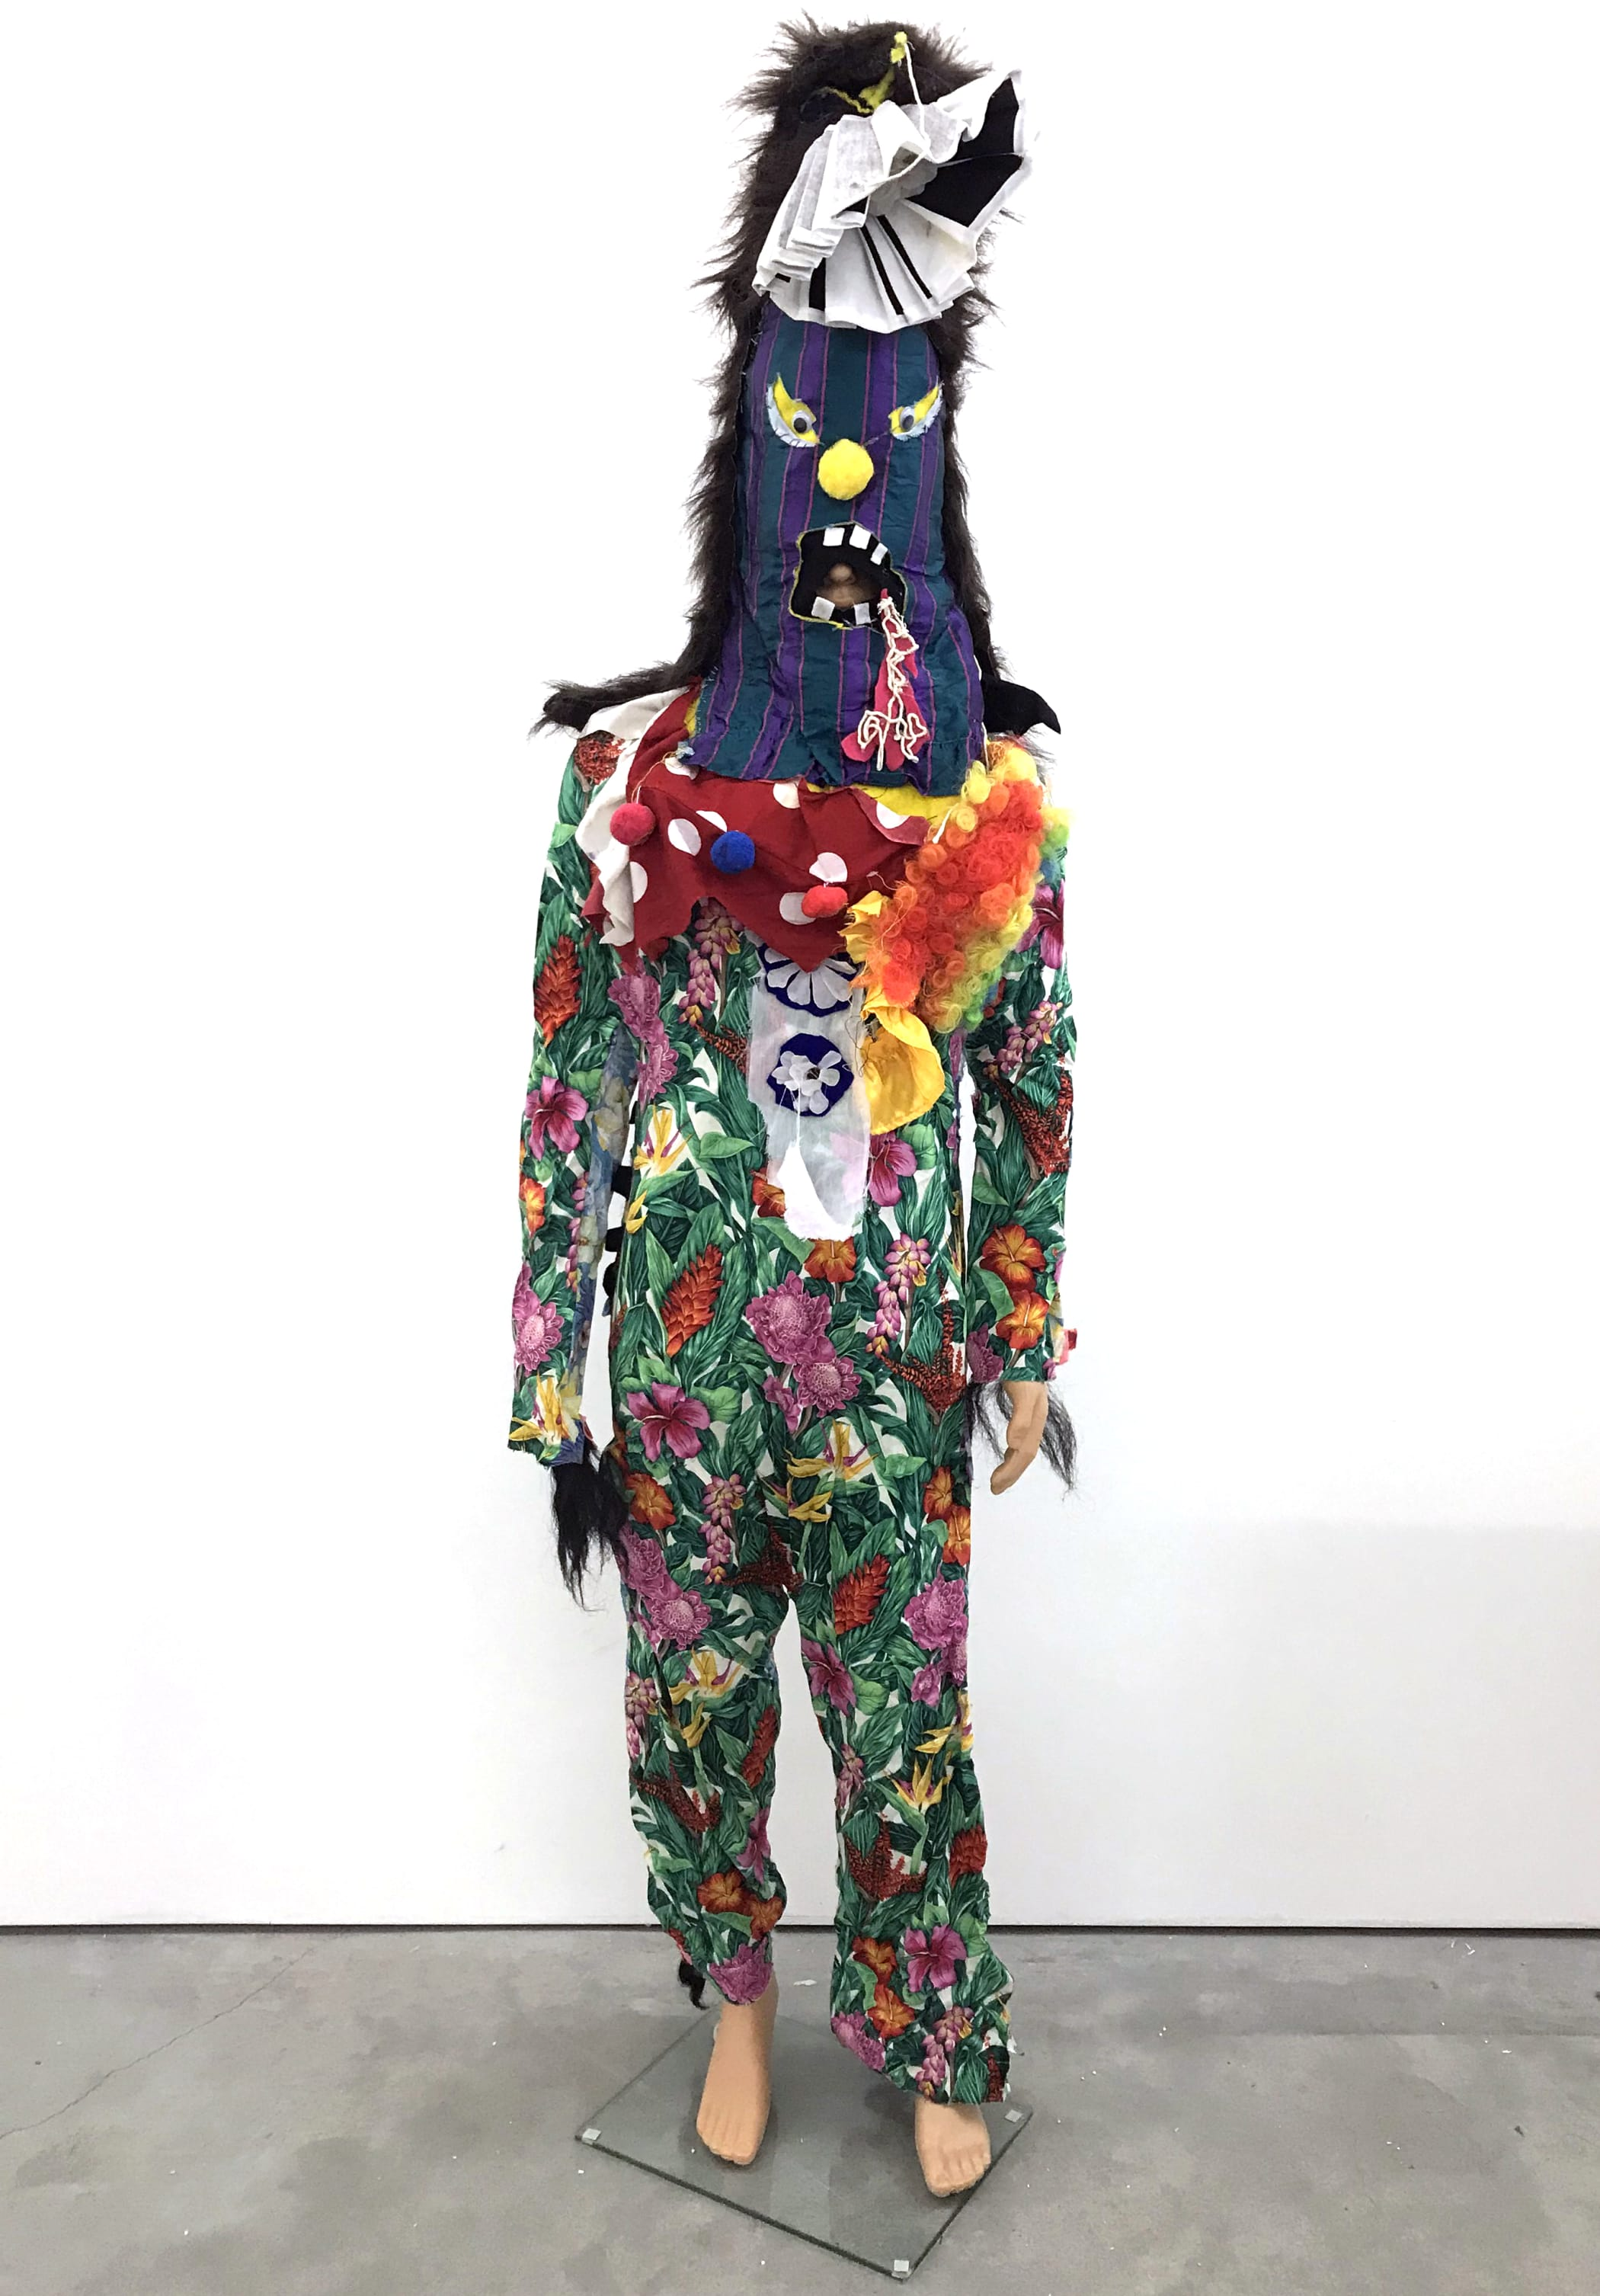 Brian A. Whiteley, Full Clown Suit 1, 2017